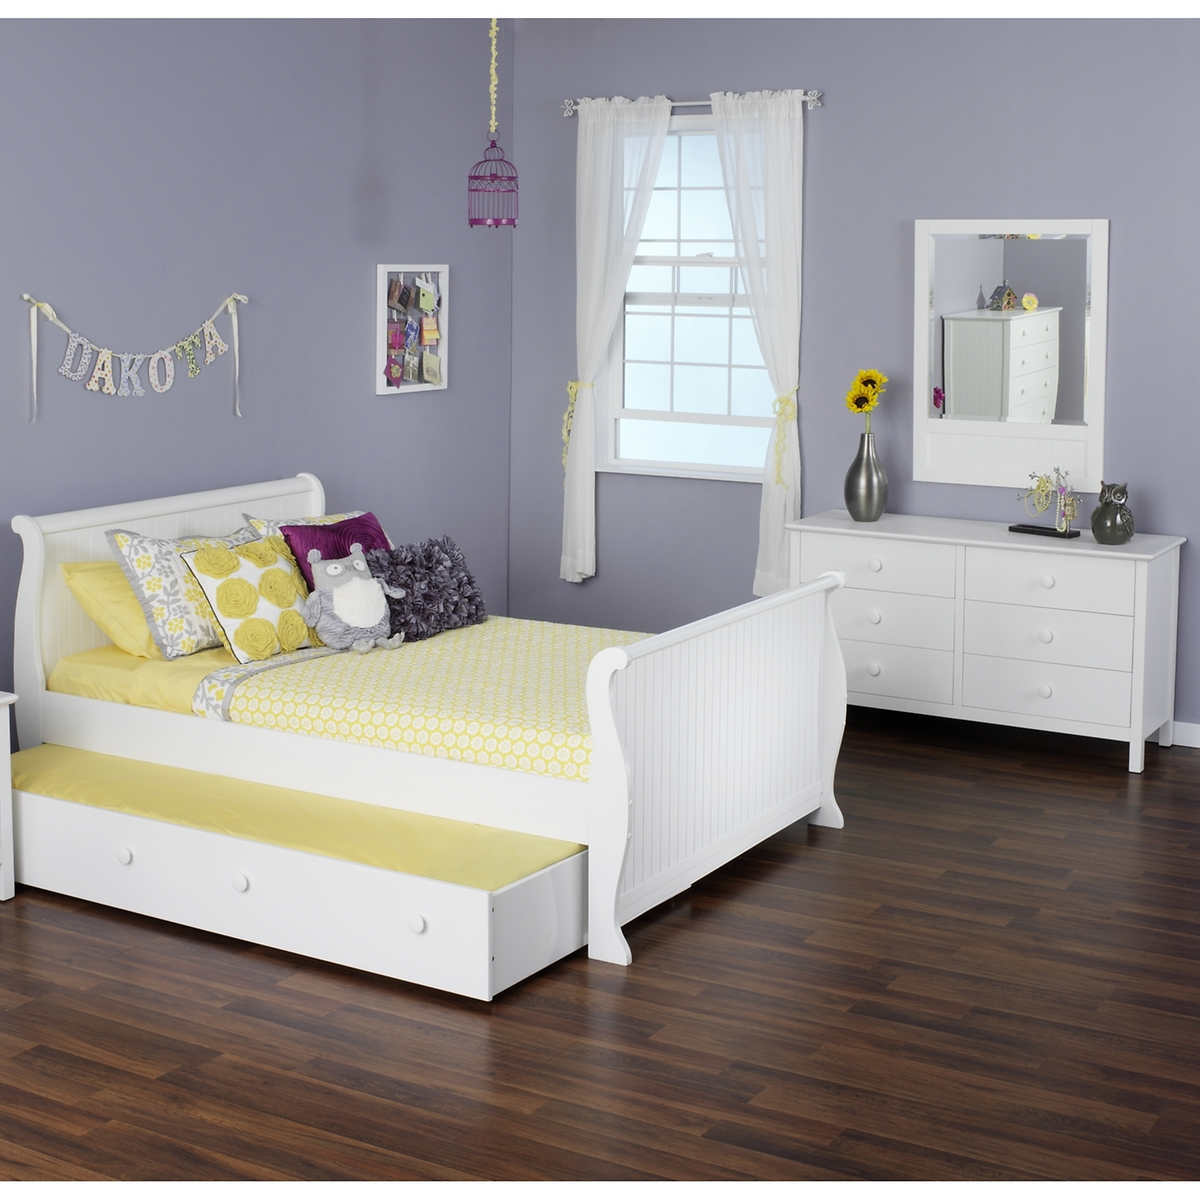 White Twin Bedroom Sets emejing twin bedroom set images - interior design ideas